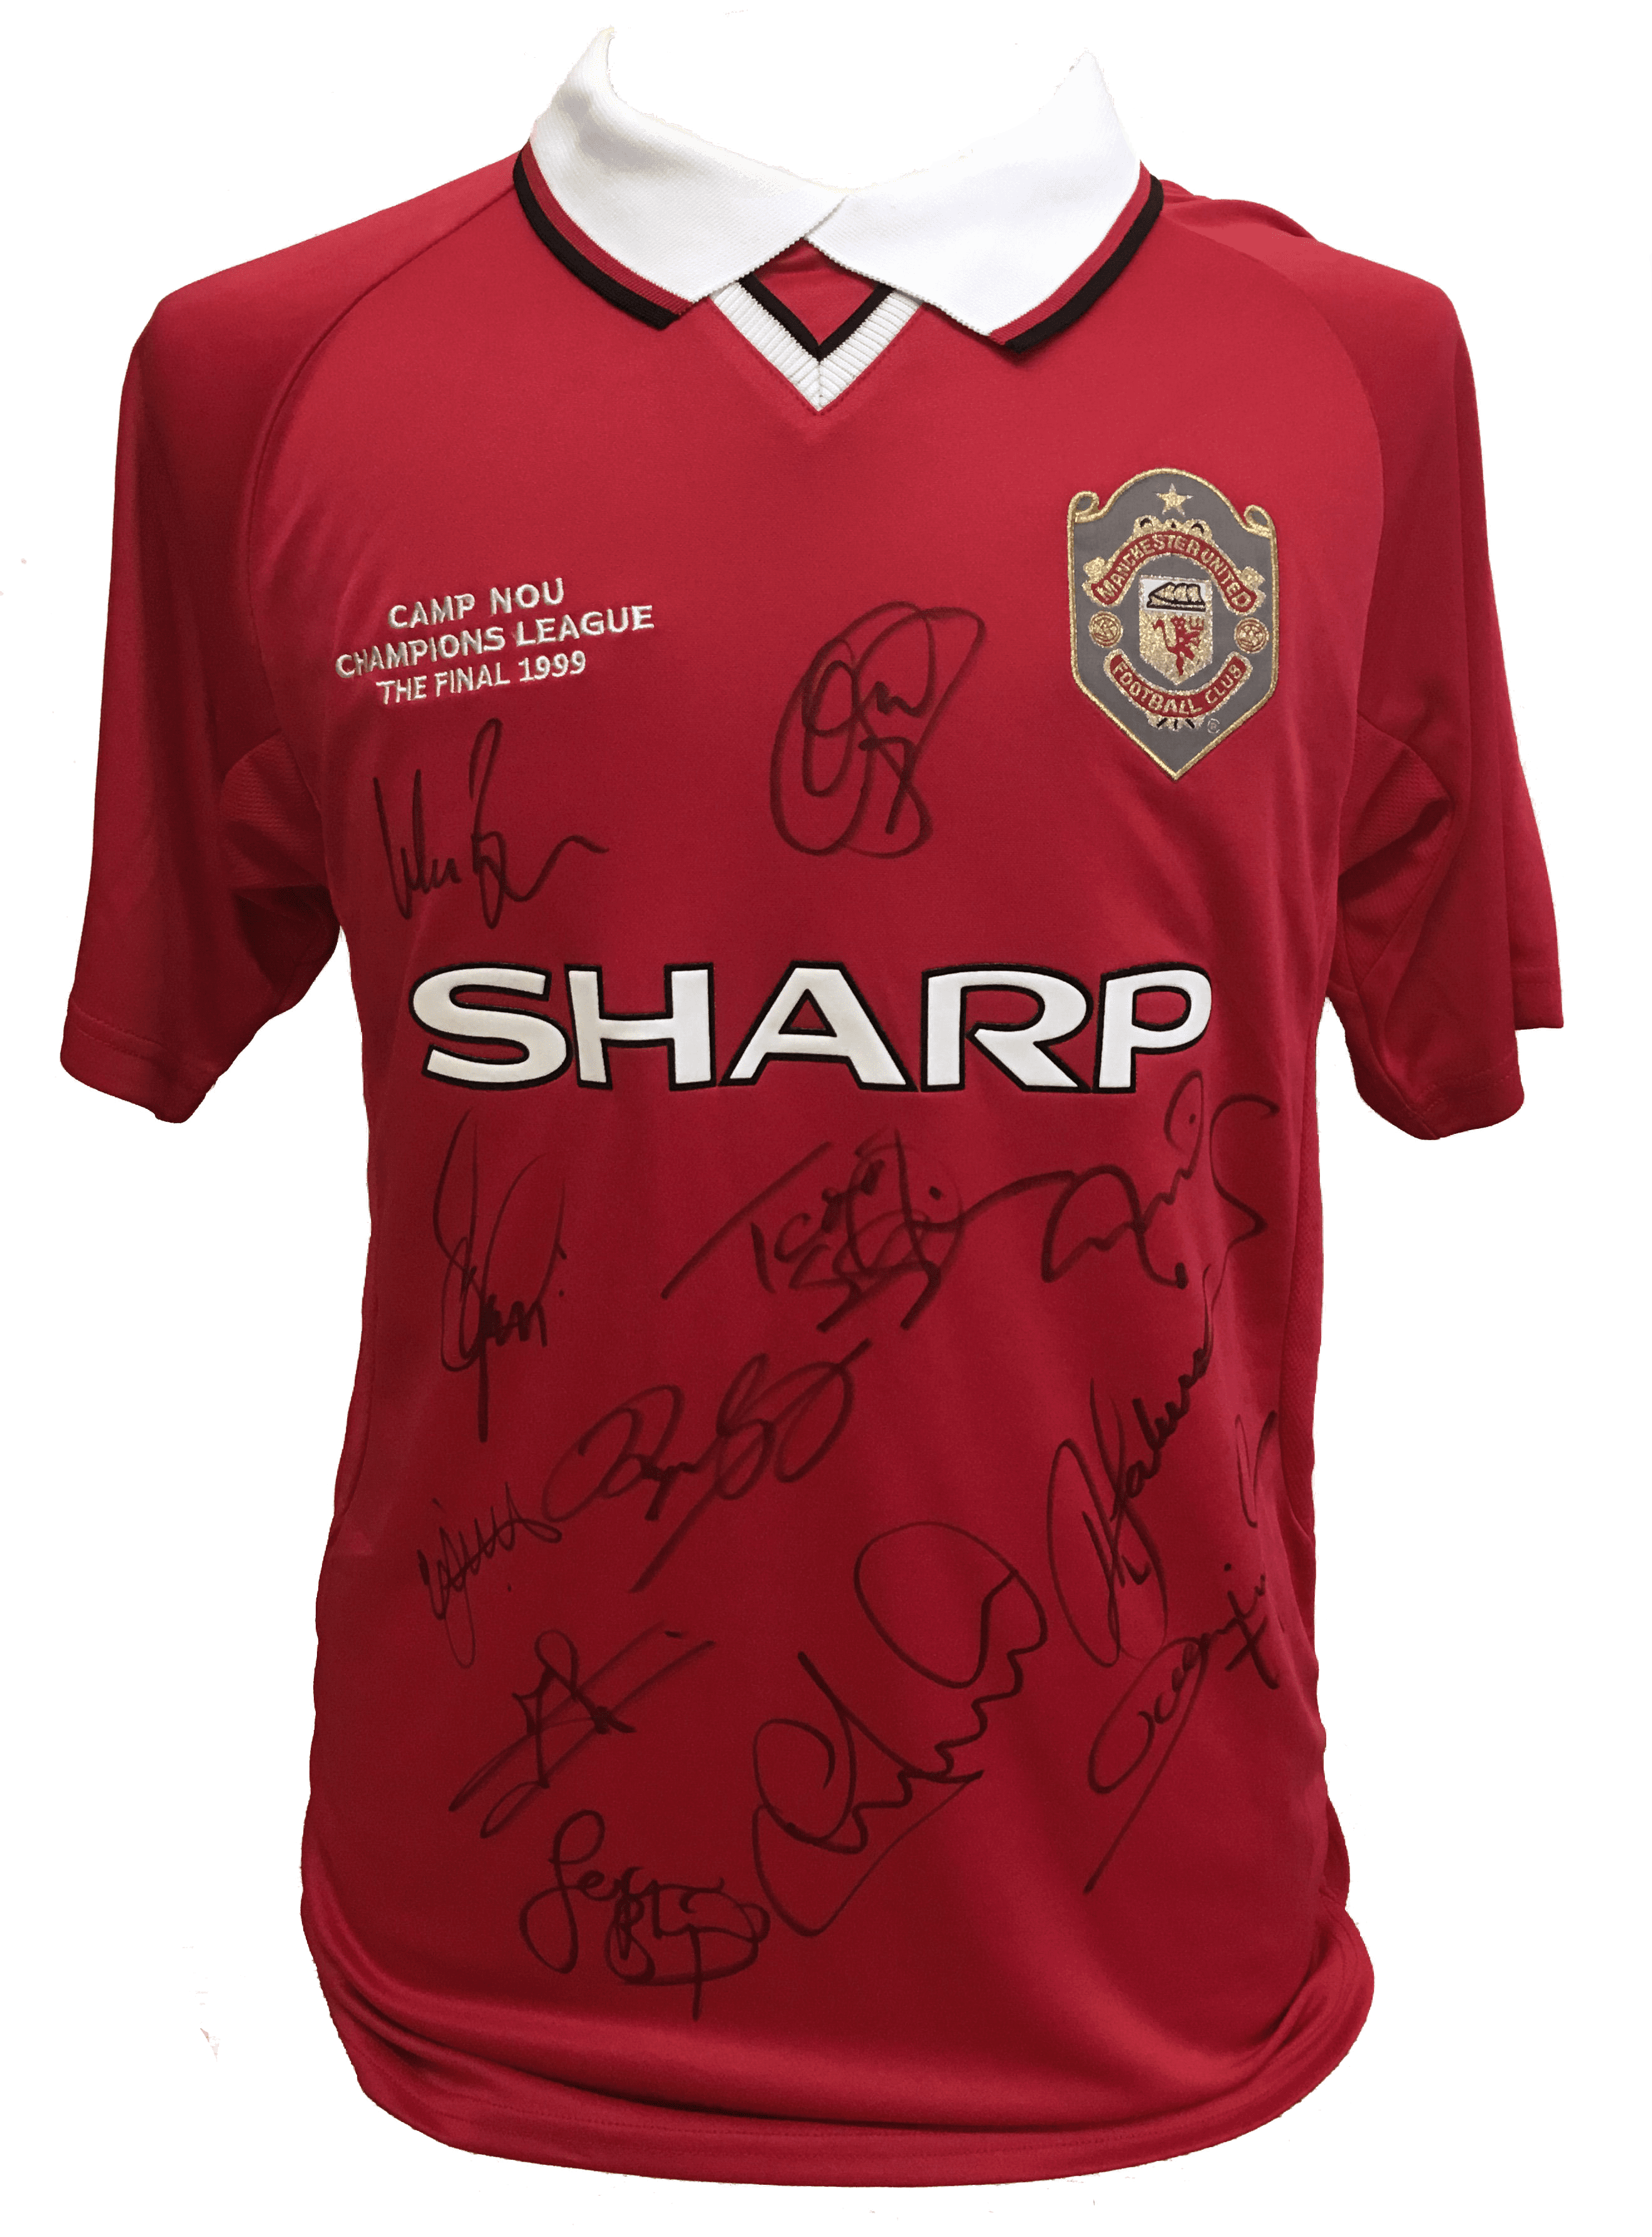 1999 Champions League Final Replica Shirt Signed By 12